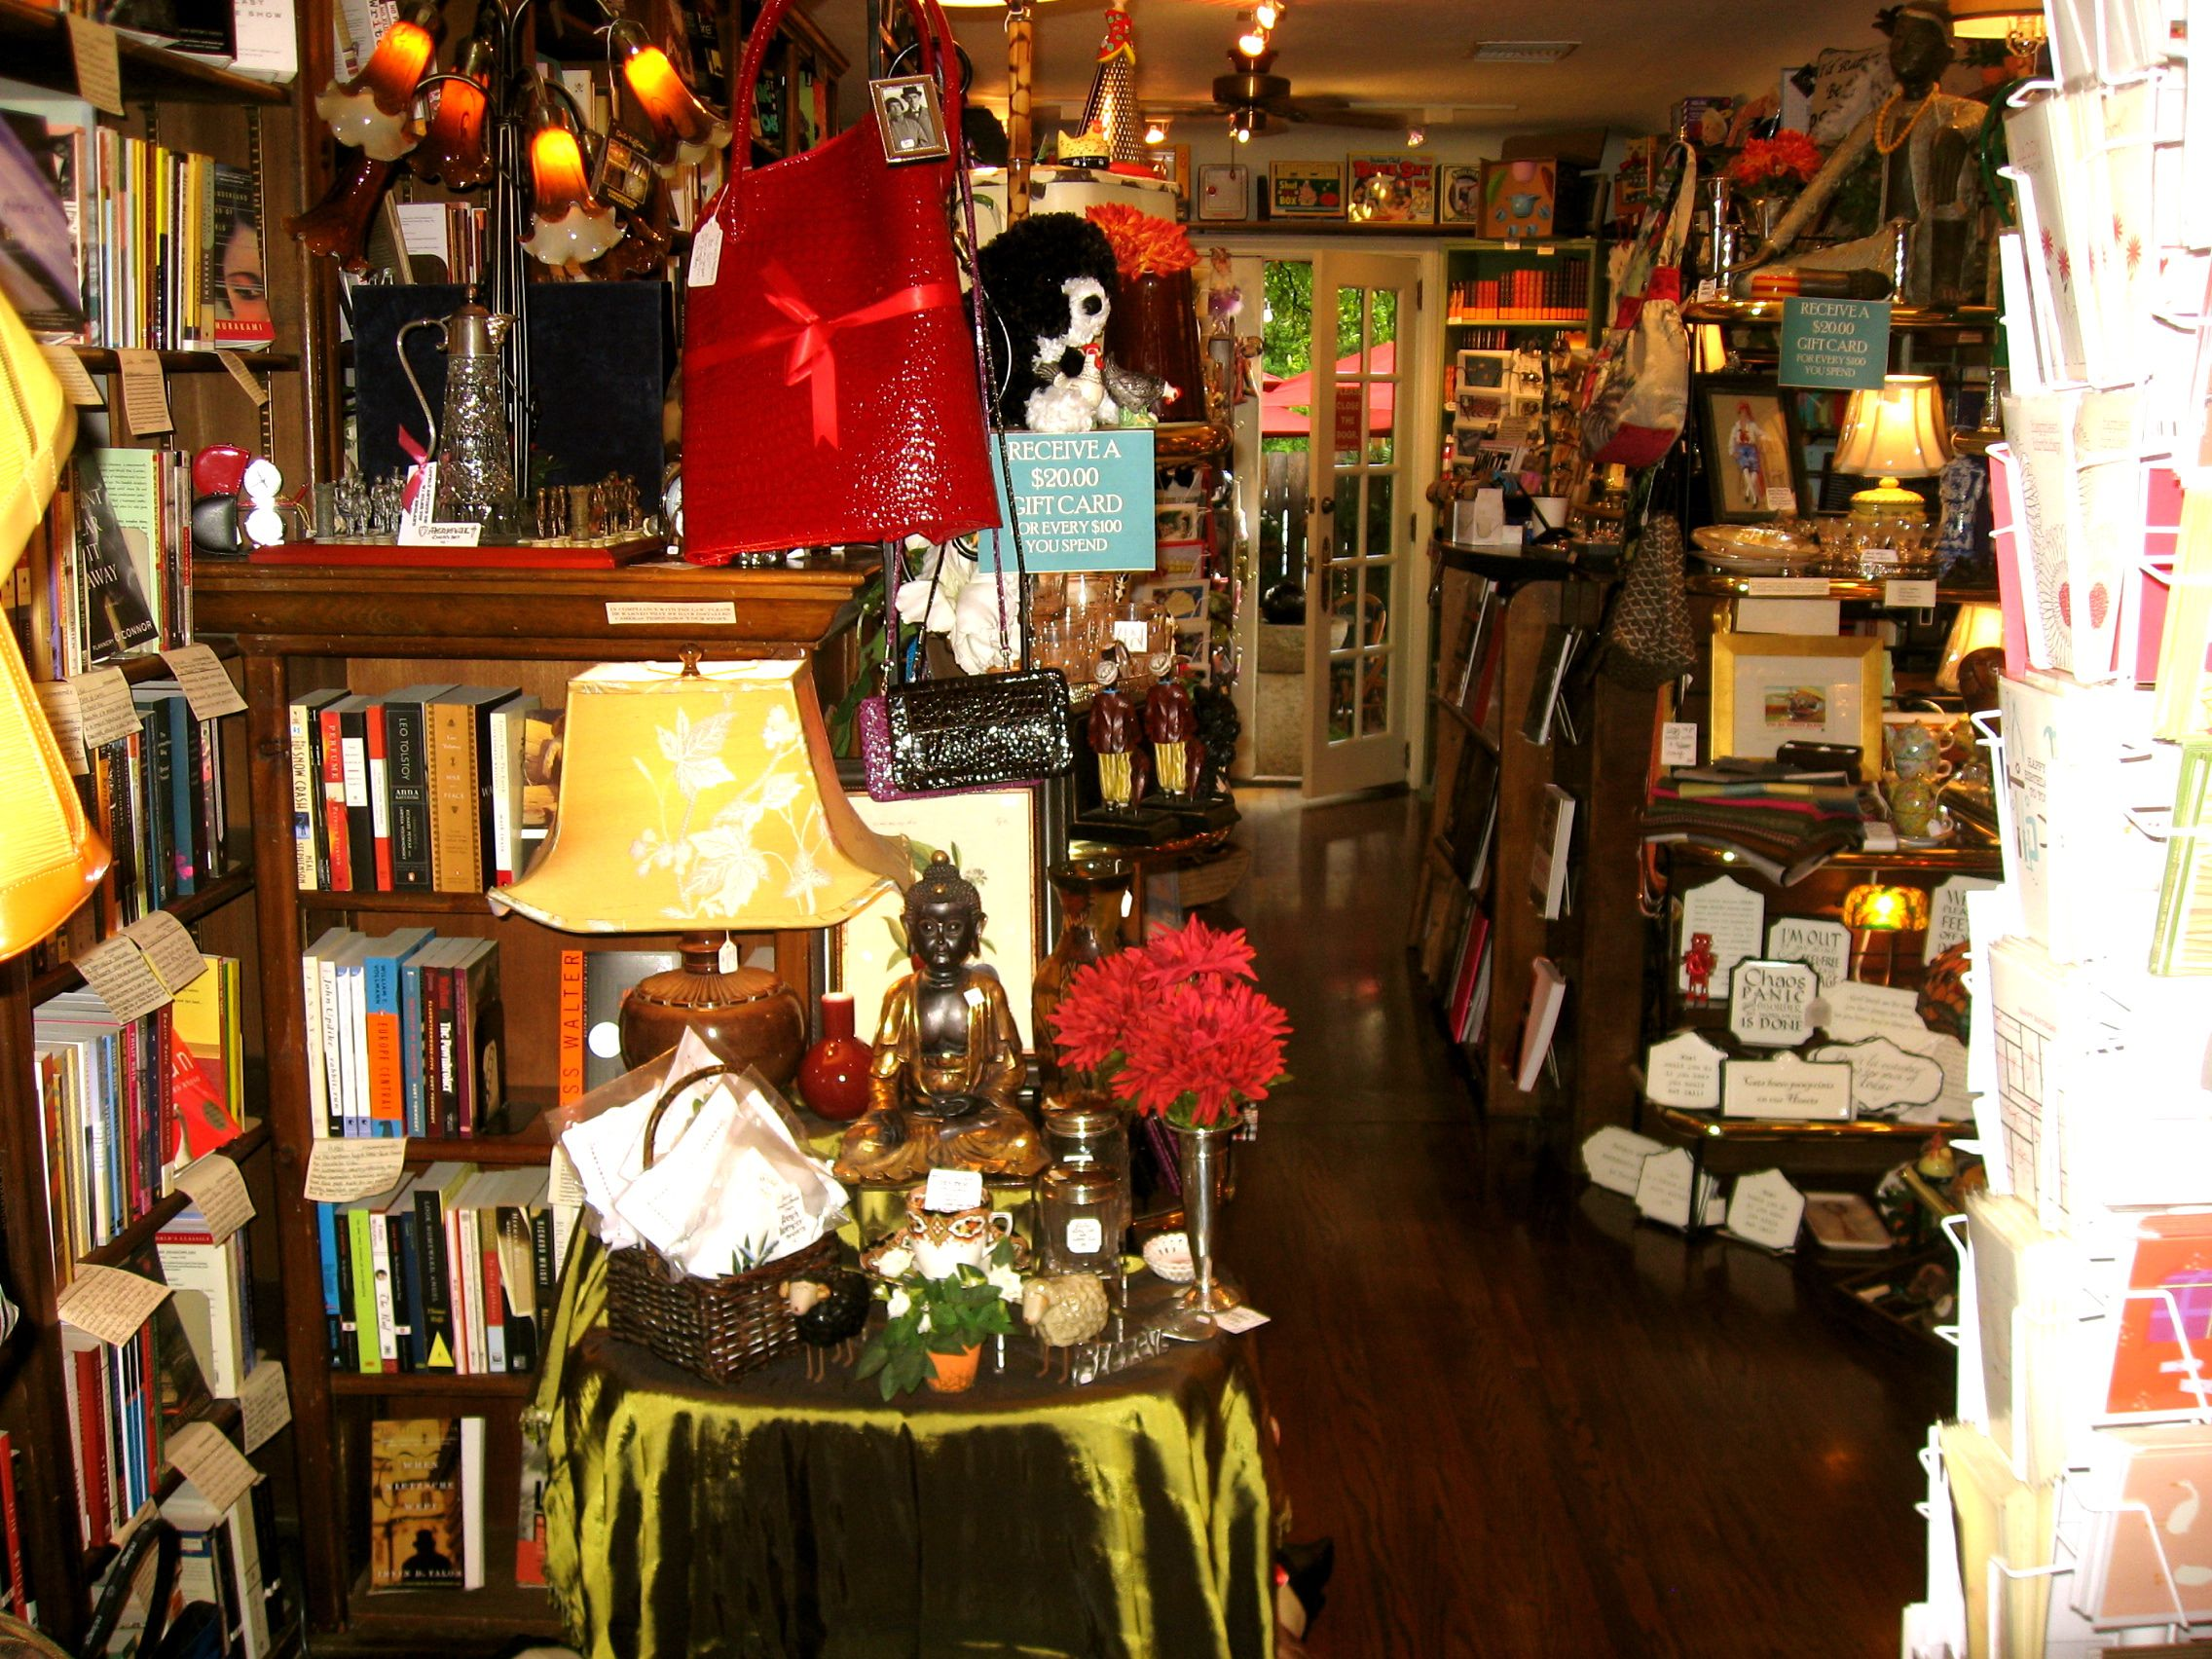 I want my store to look like this one day :)